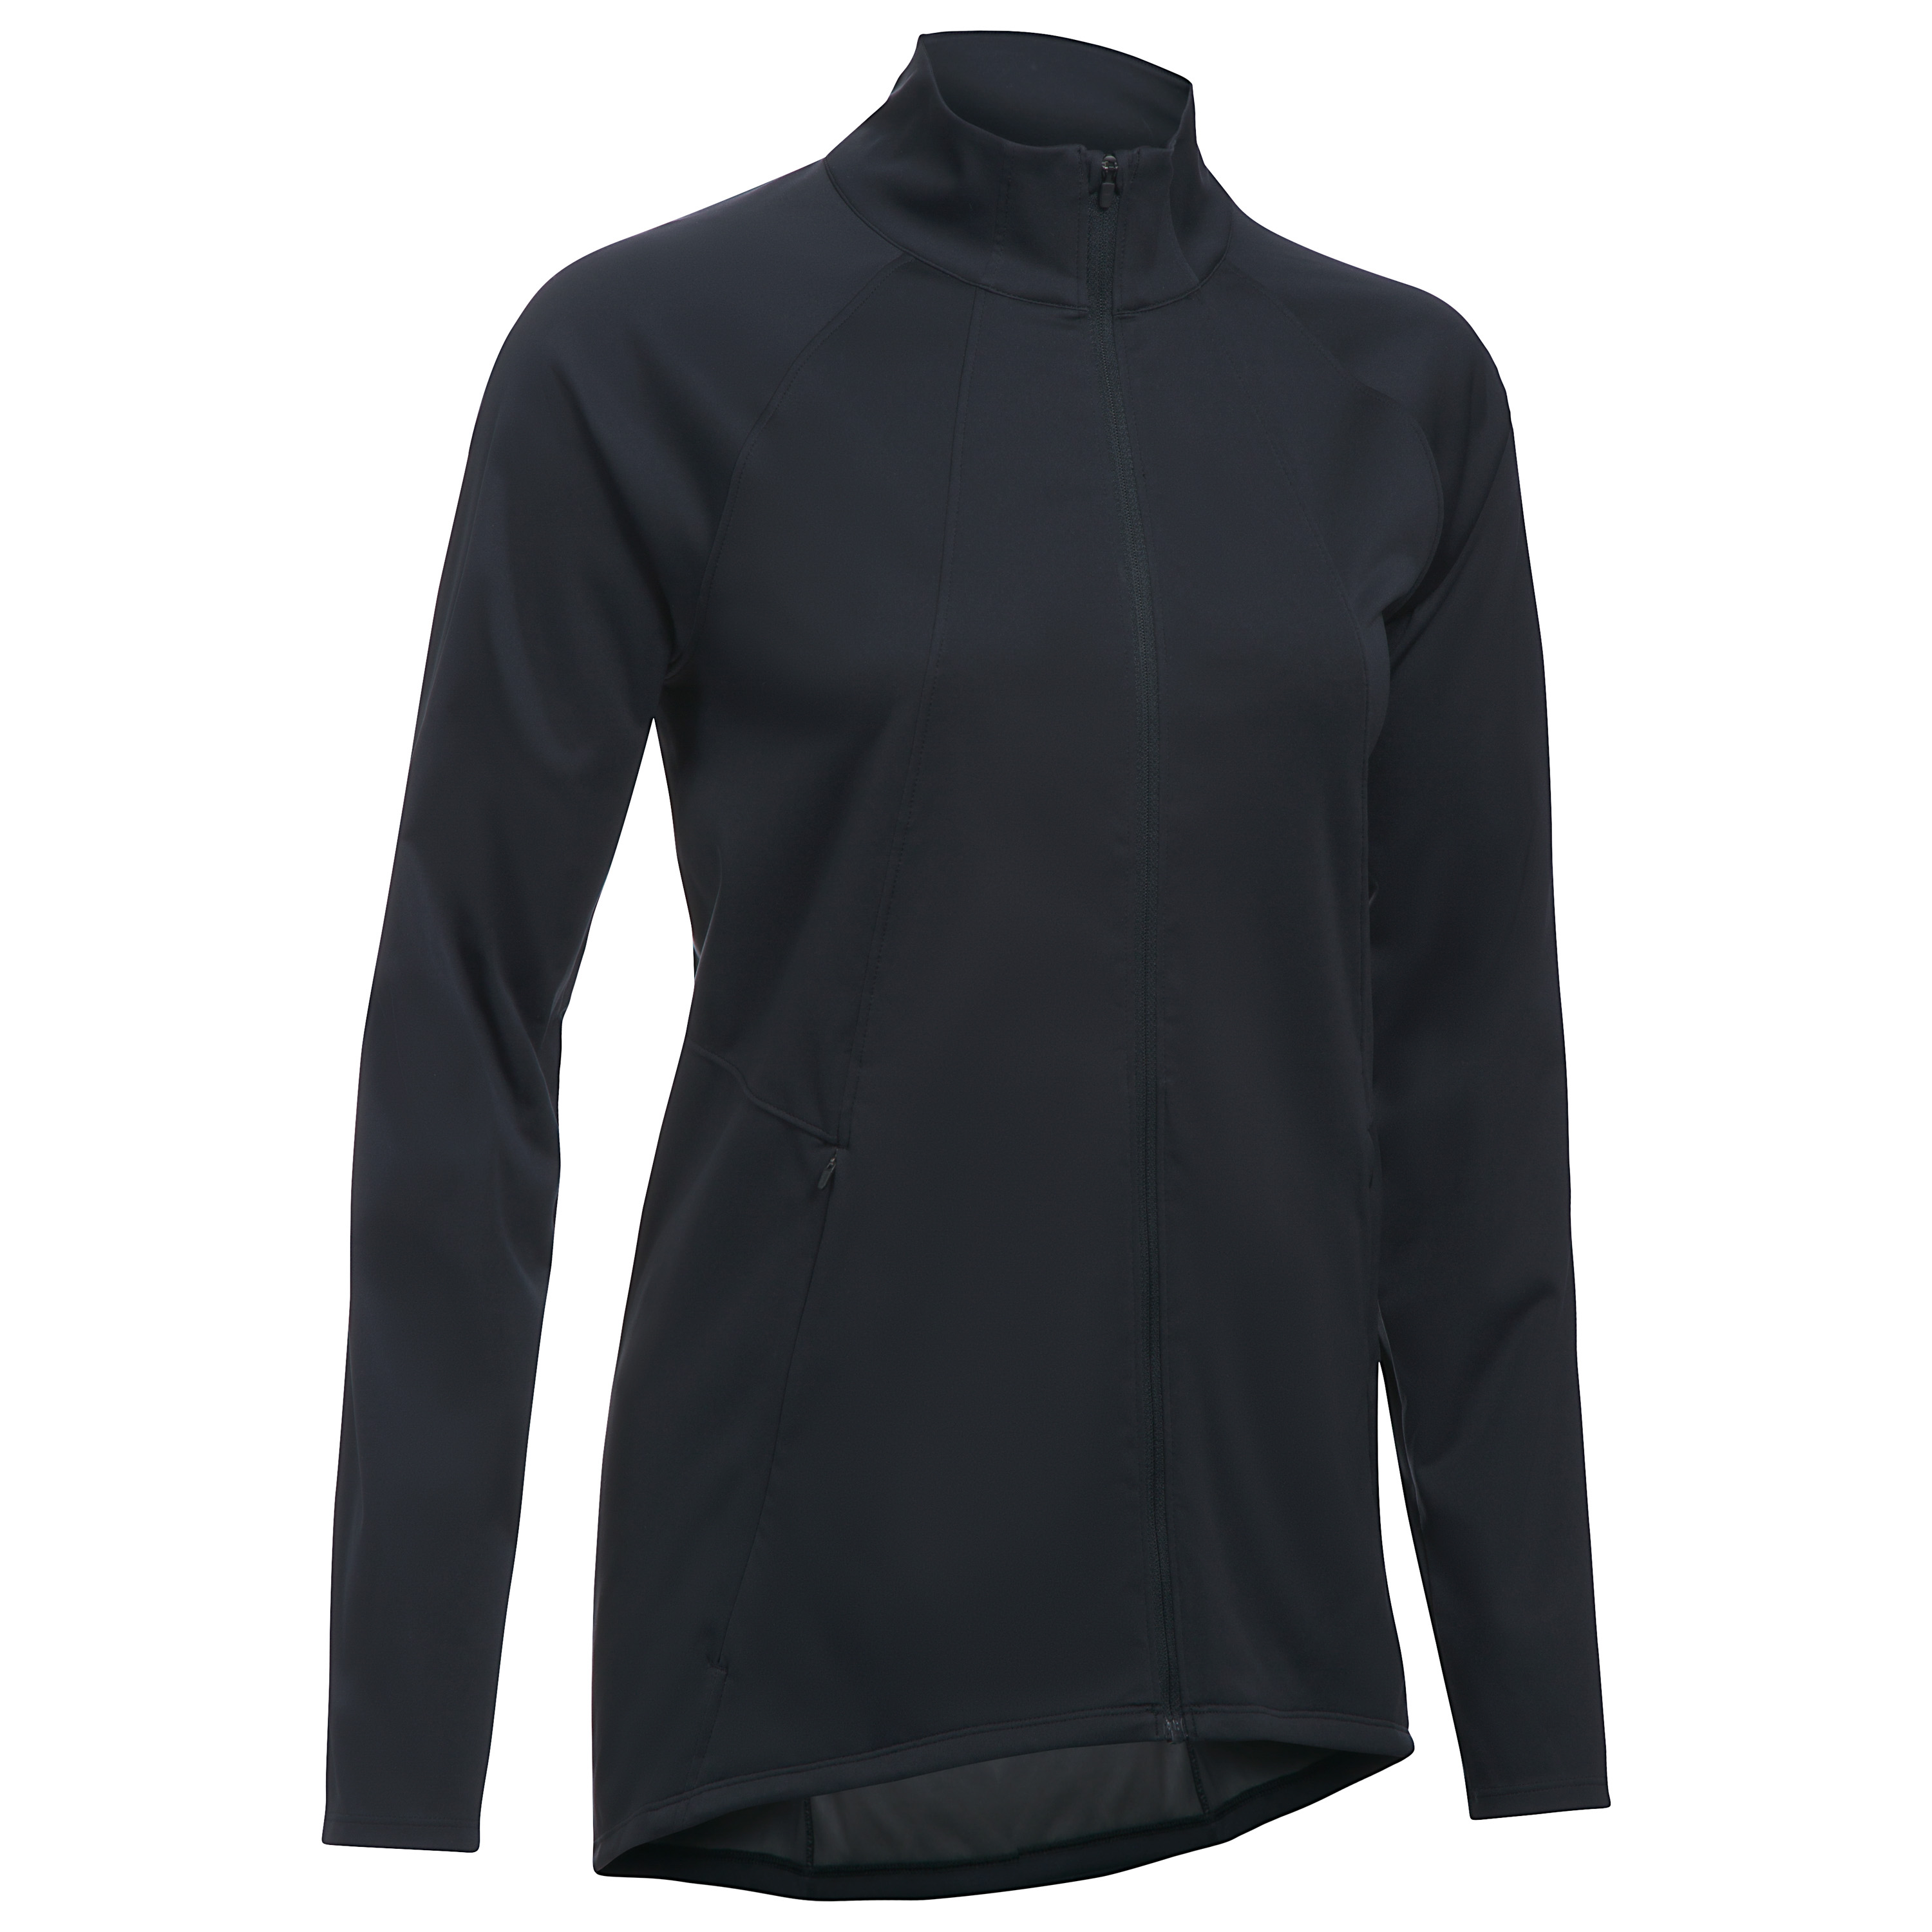 Under Armour Women Jacke PickUp The Pace schwarz